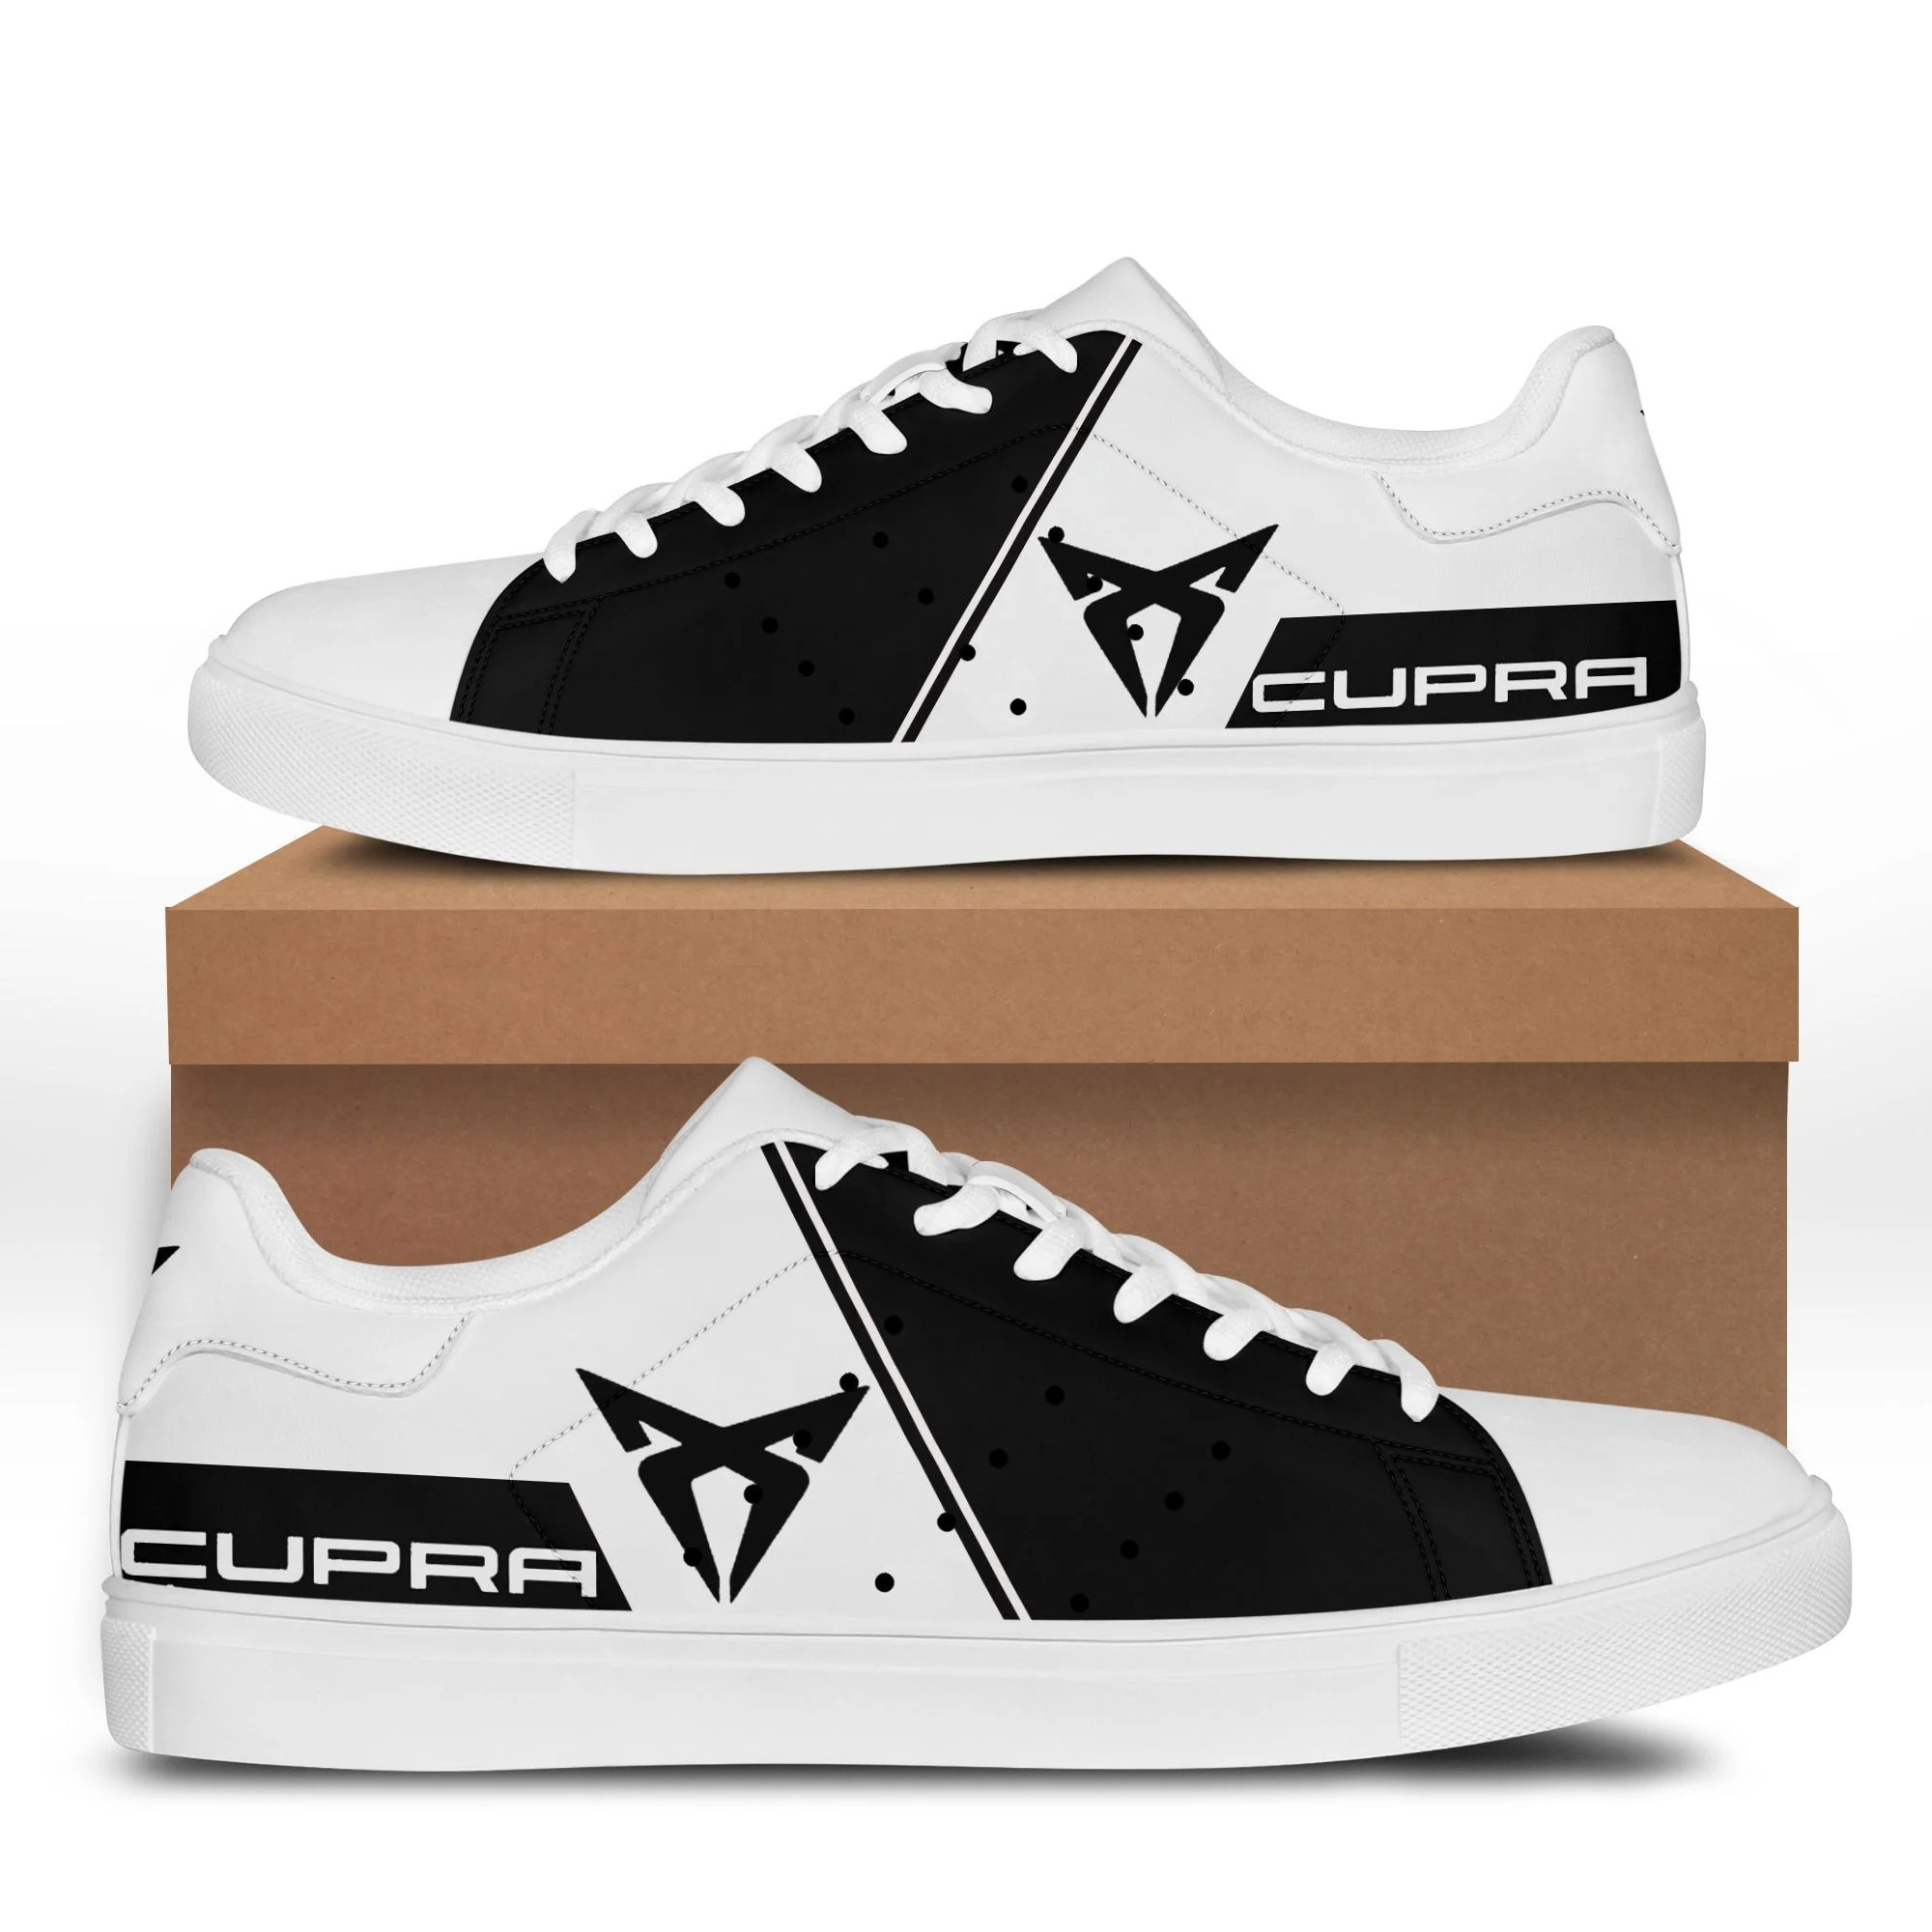 Cupra black and white stan smith low top shoes 2